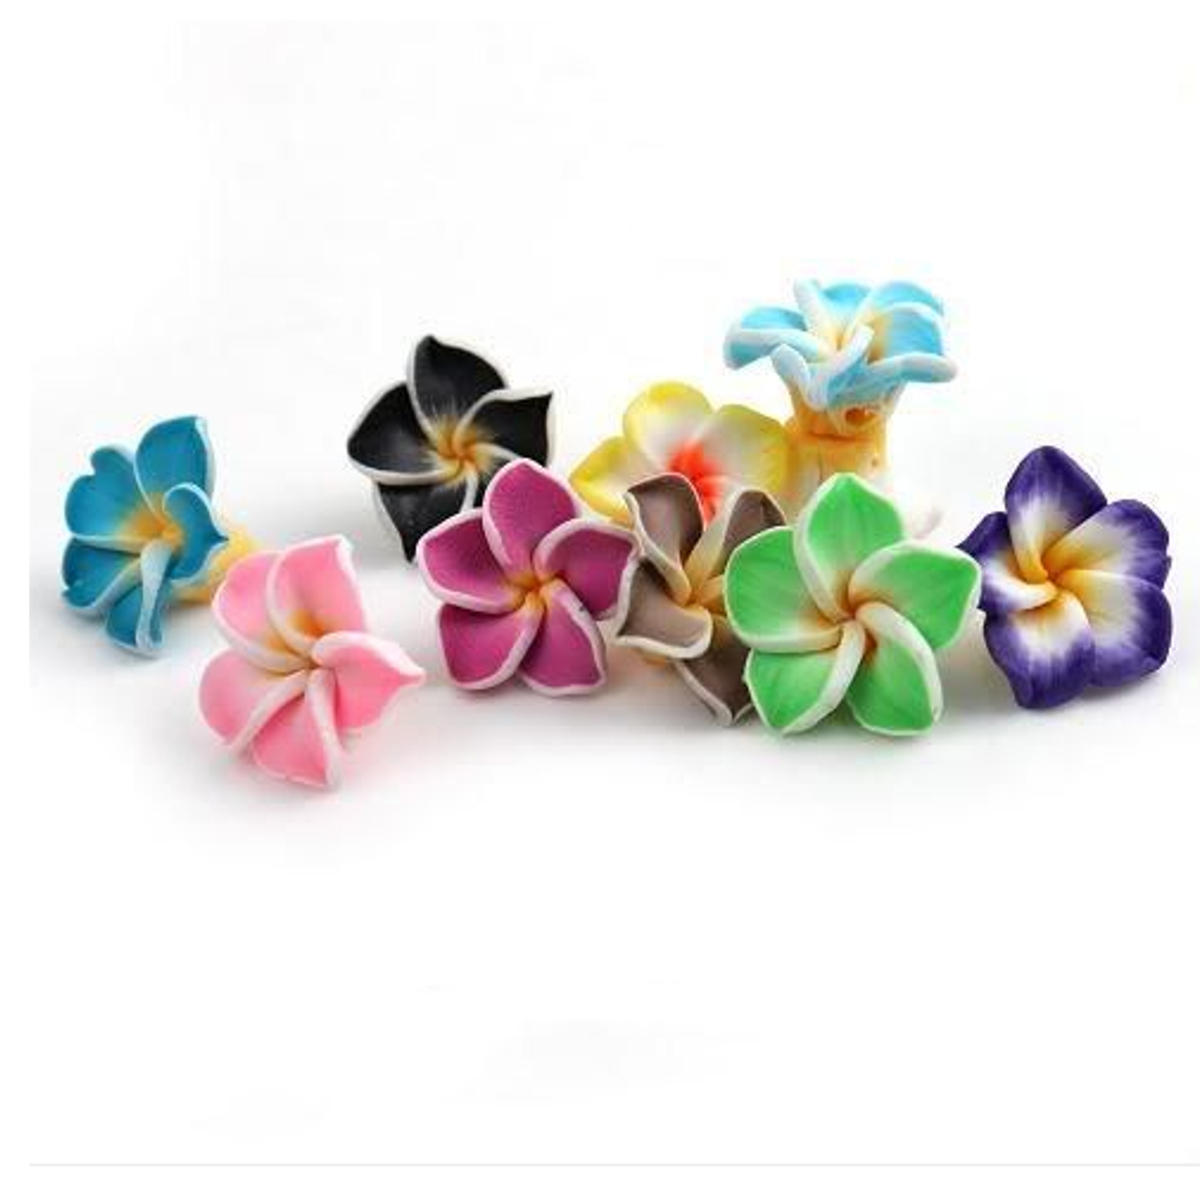 50pcs Multicolor Polymer Fimo Clay Flower Diy Craft Spacer Loose